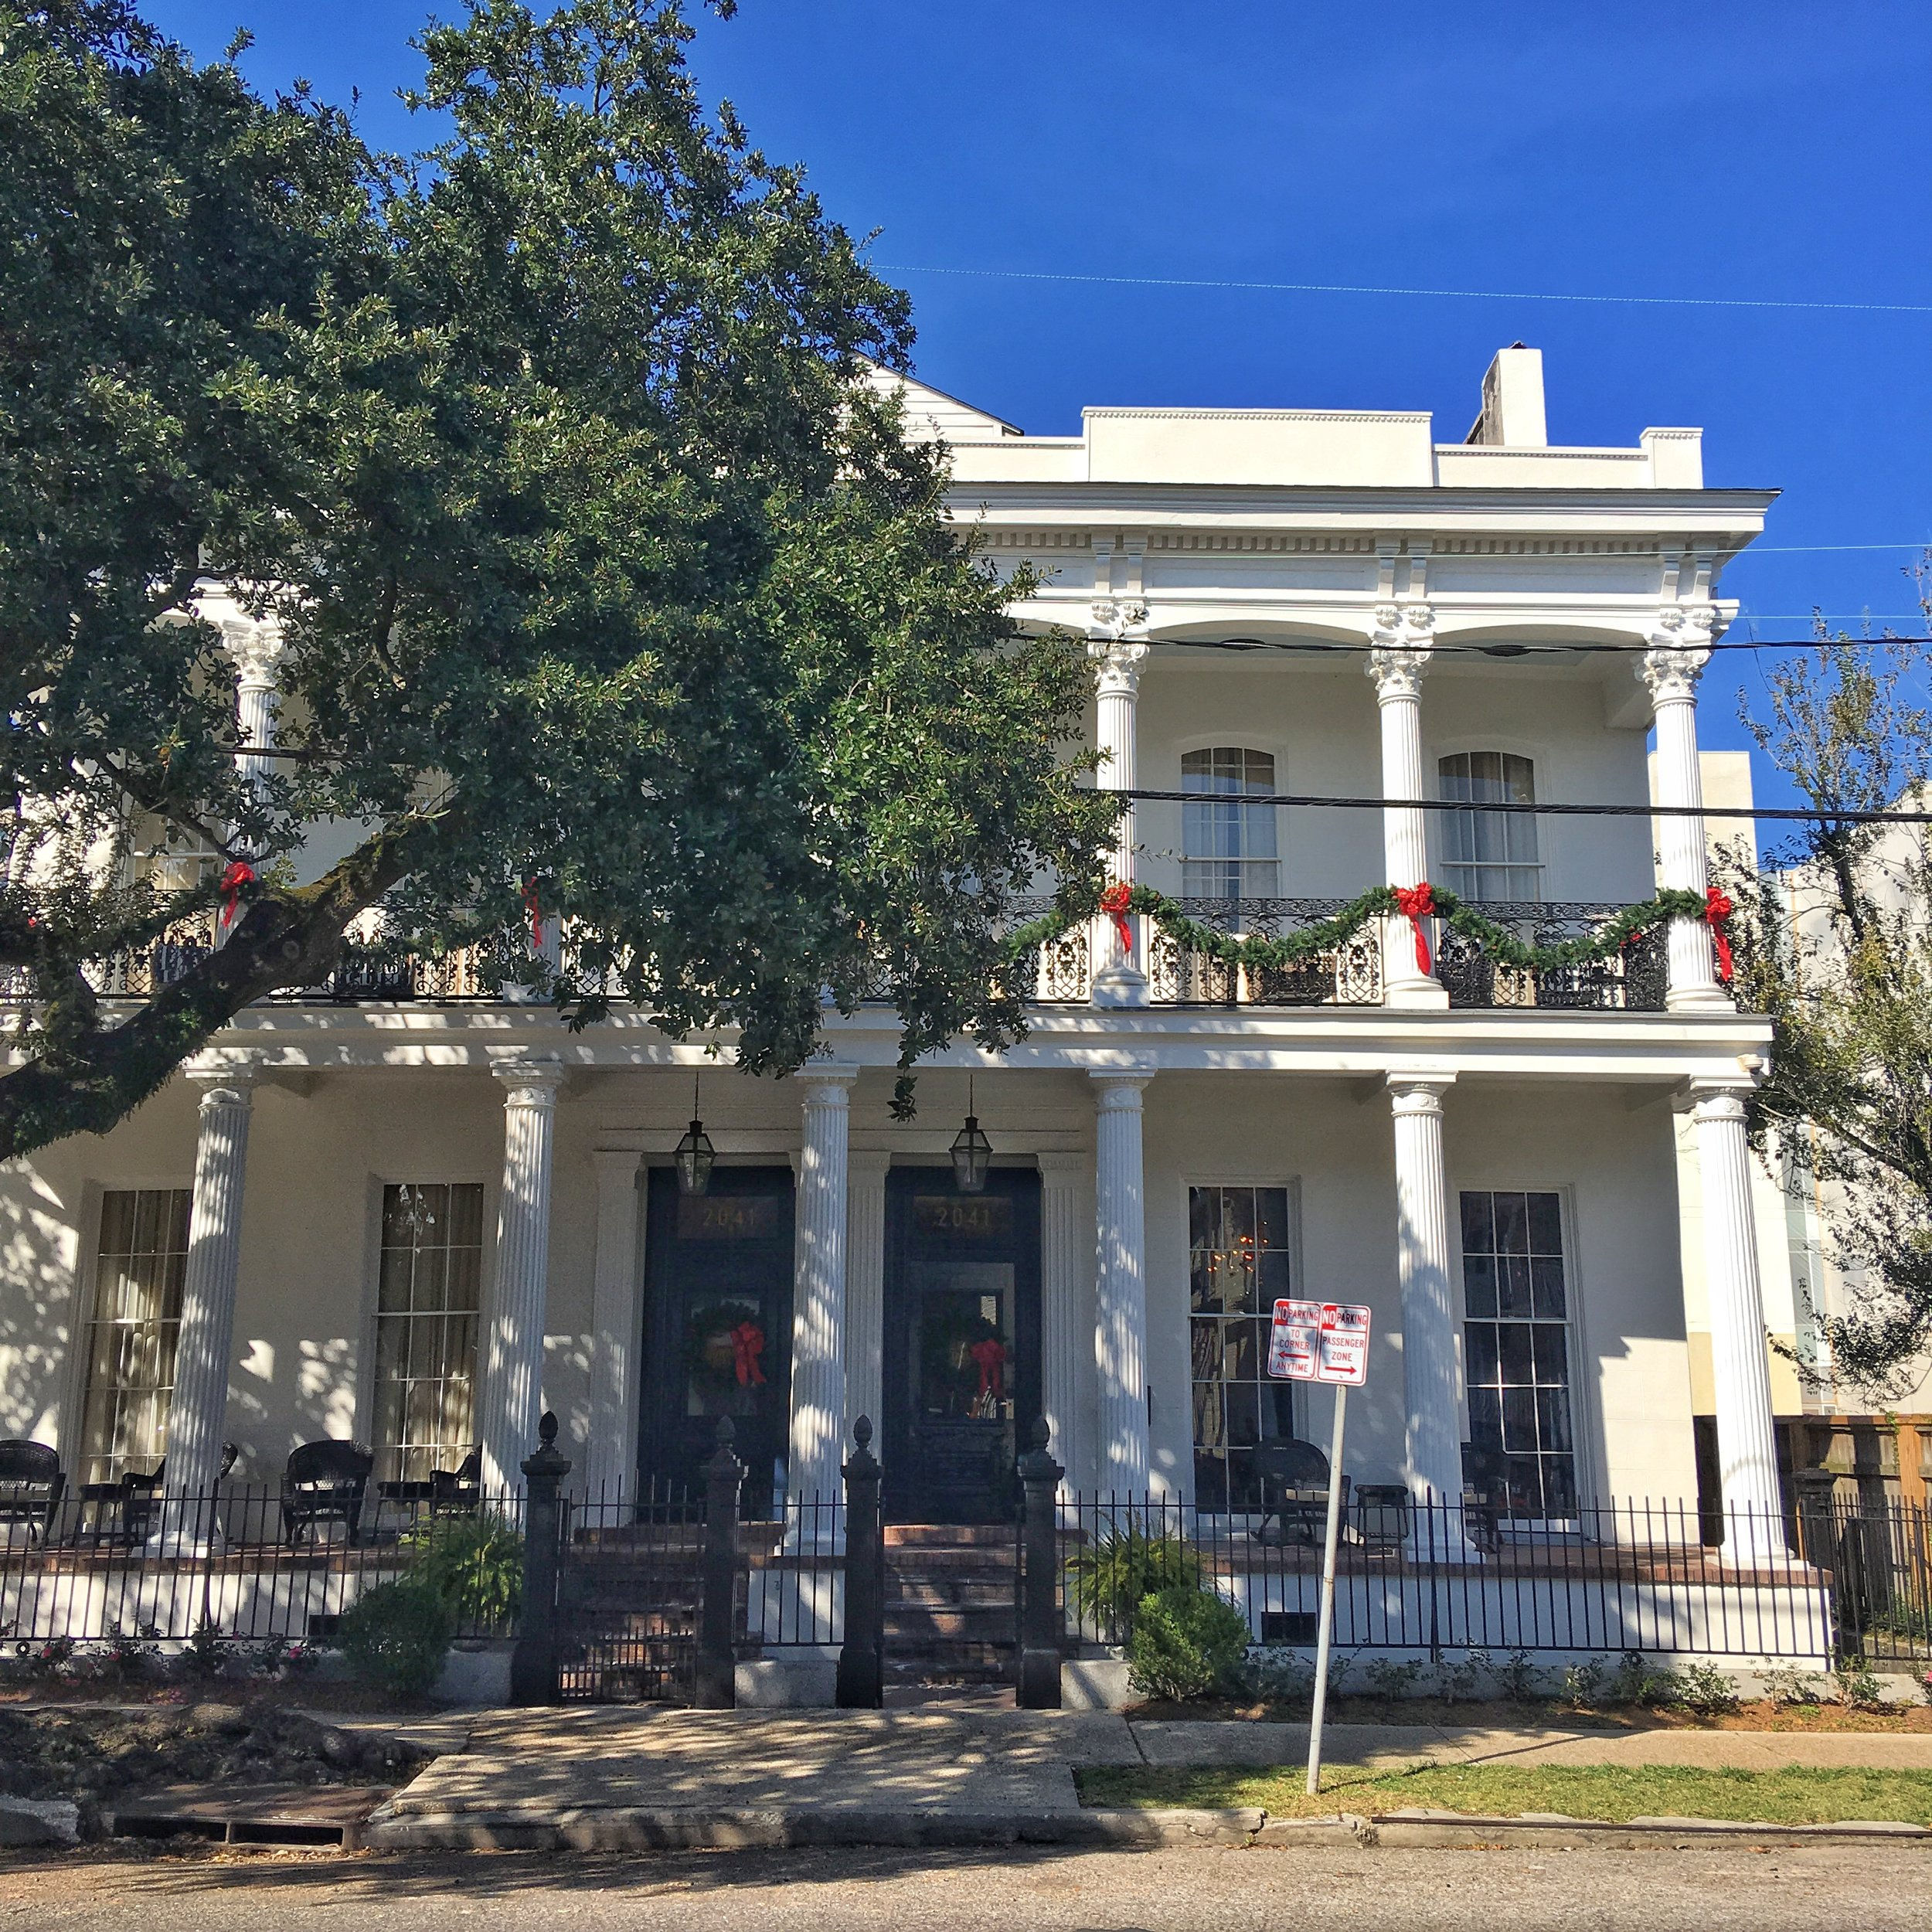 The Henry Howard Hotel in the Garden District.